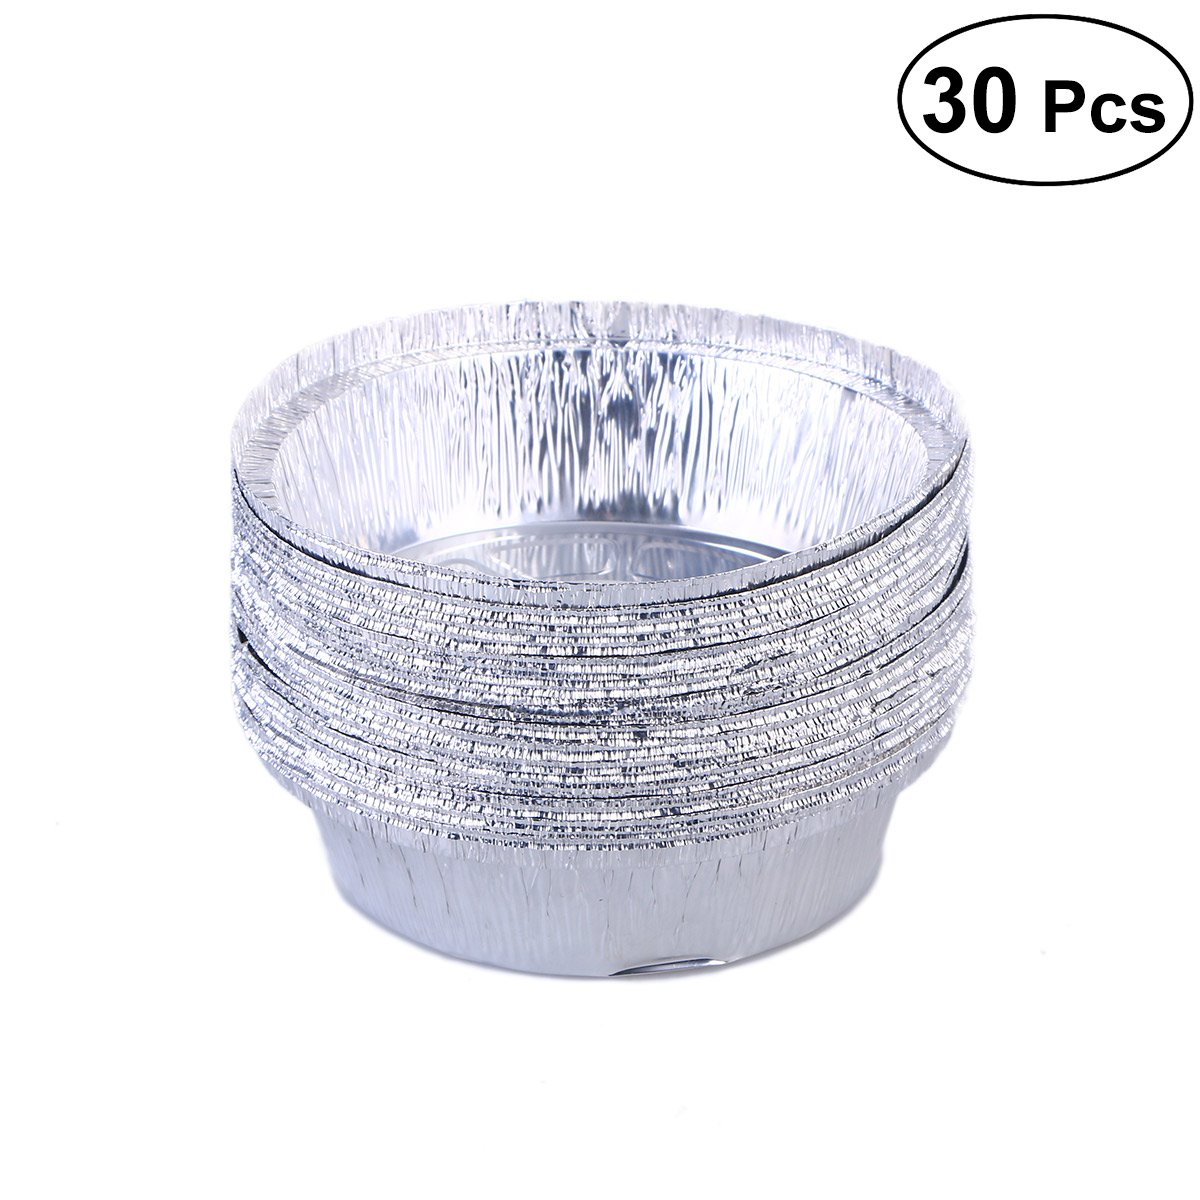 BESTONZON 30pcs Aluminium Foil Food Containers Plate Round Disposable Barbecue Plate (No Lids)